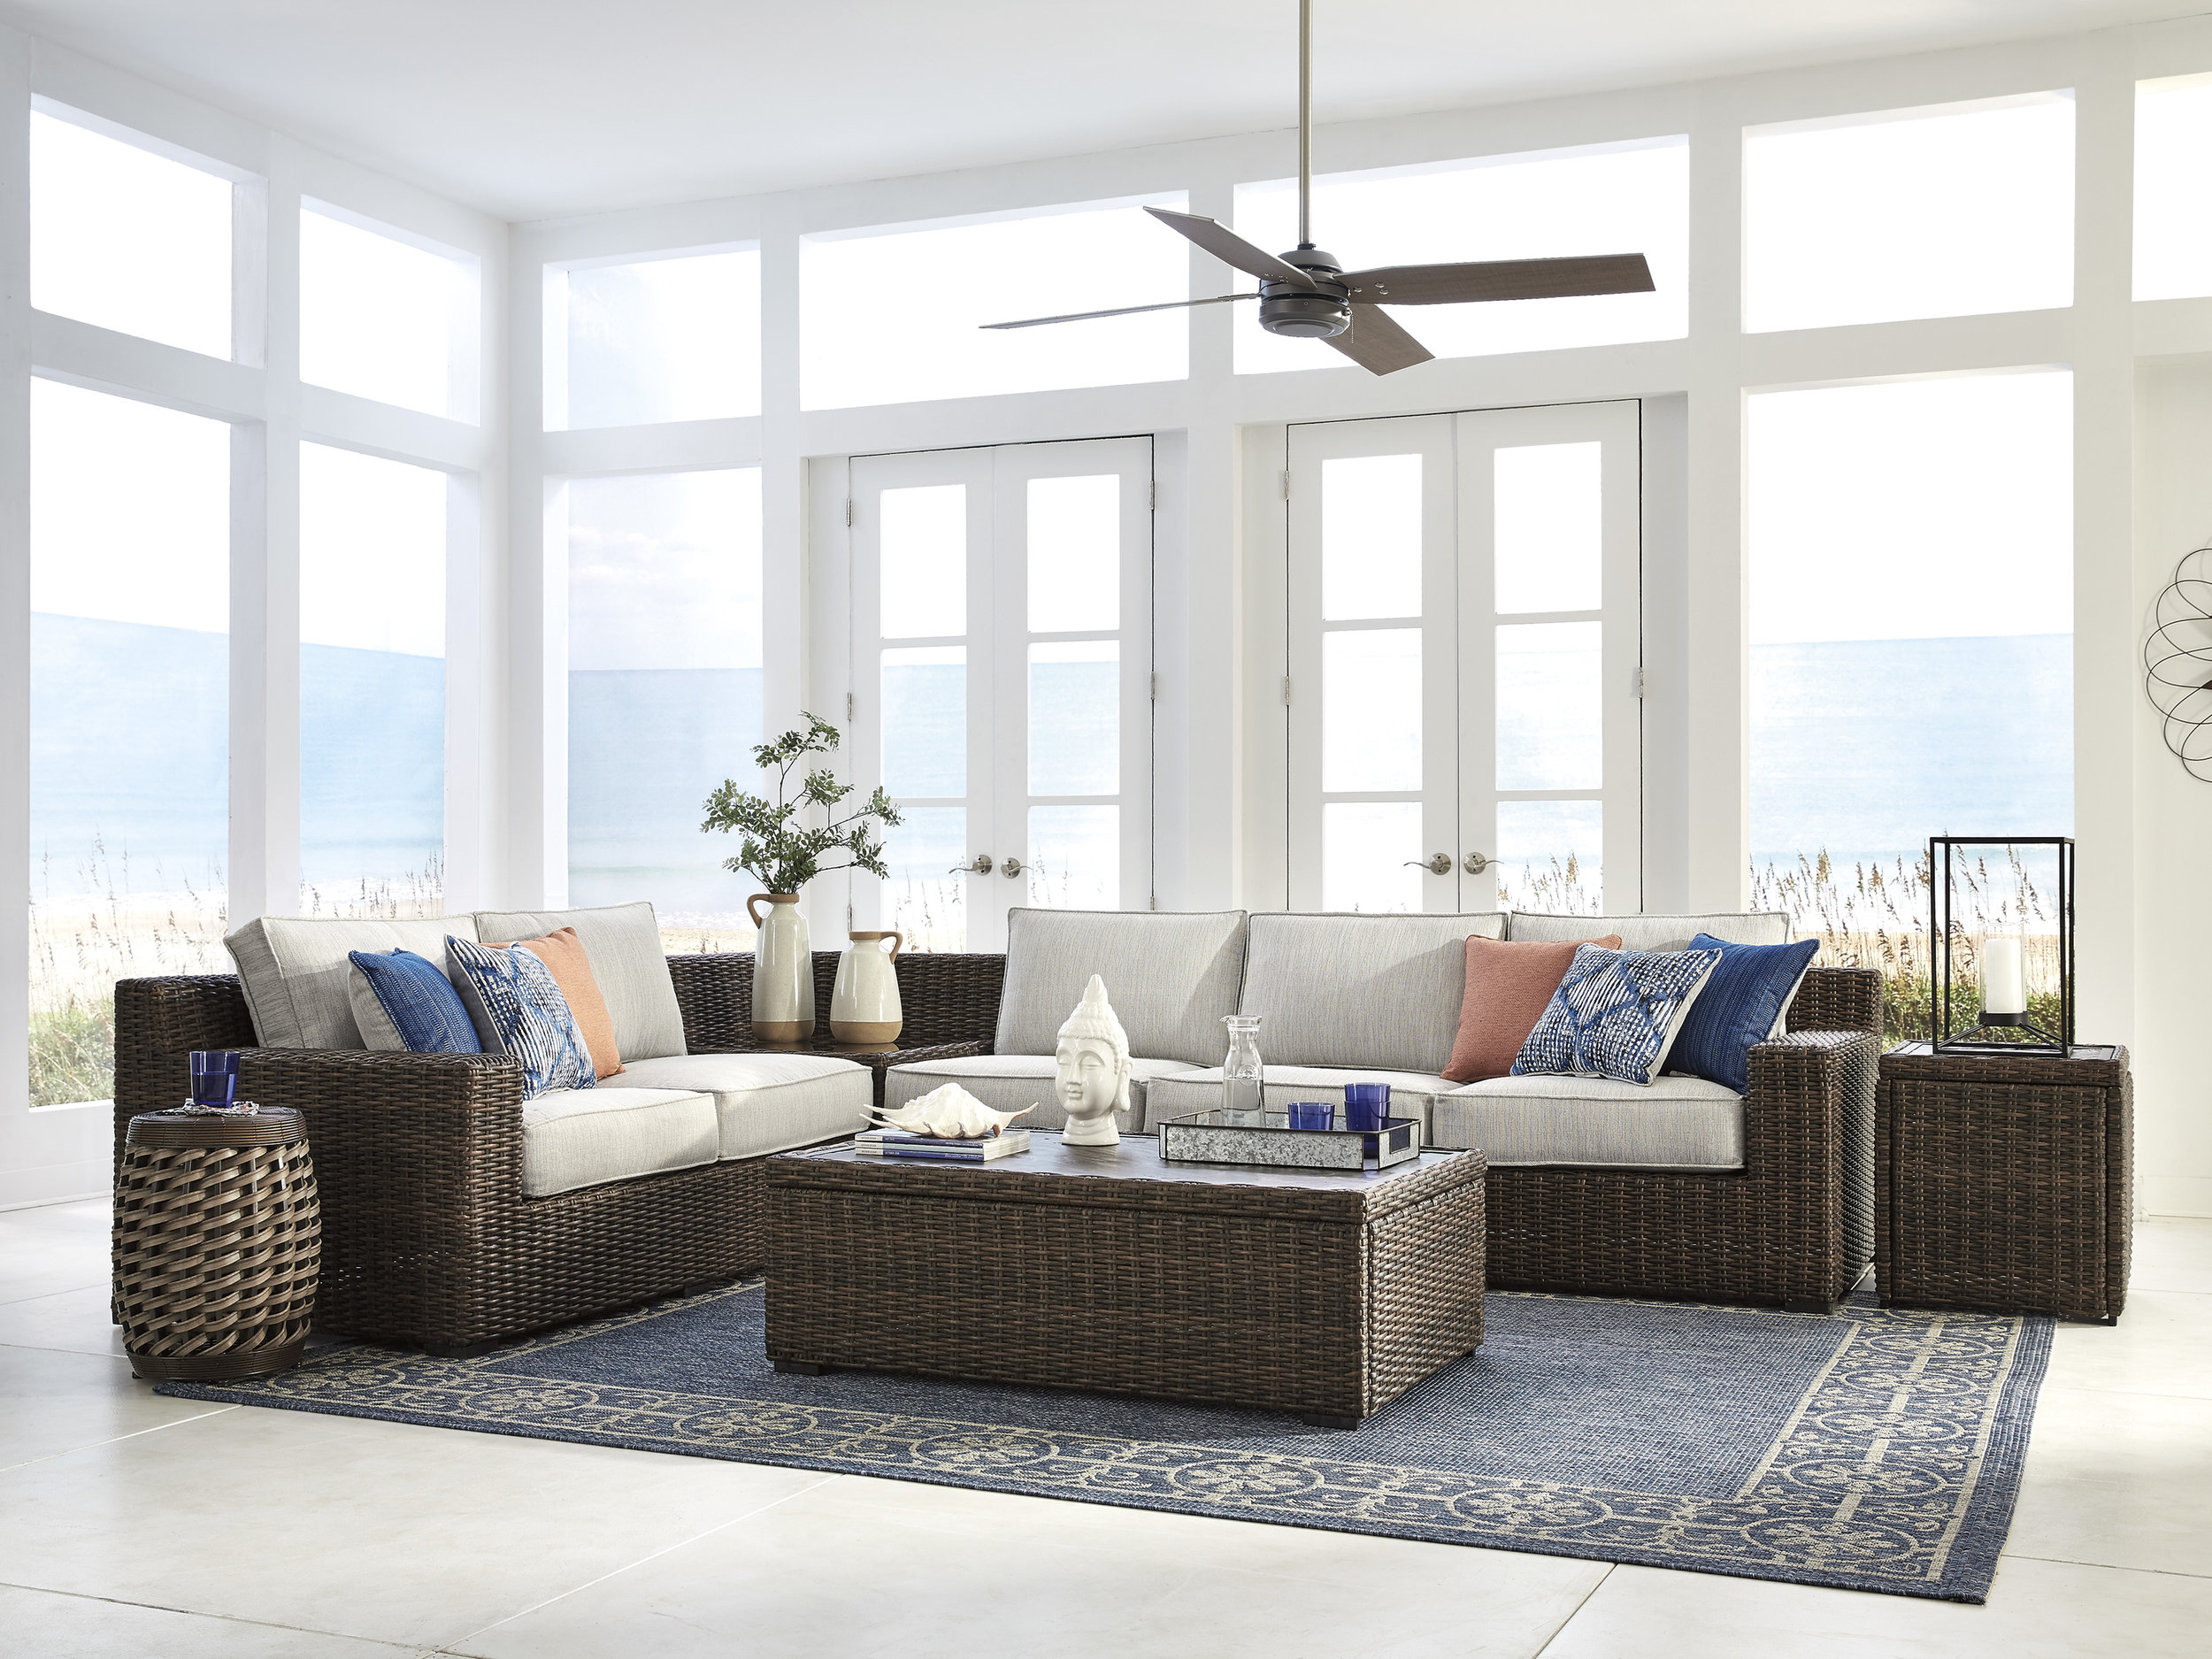 ASHLEY 2019 ALTA GRAND SECTIONAL GROUP - Sectional LARGE.jpg